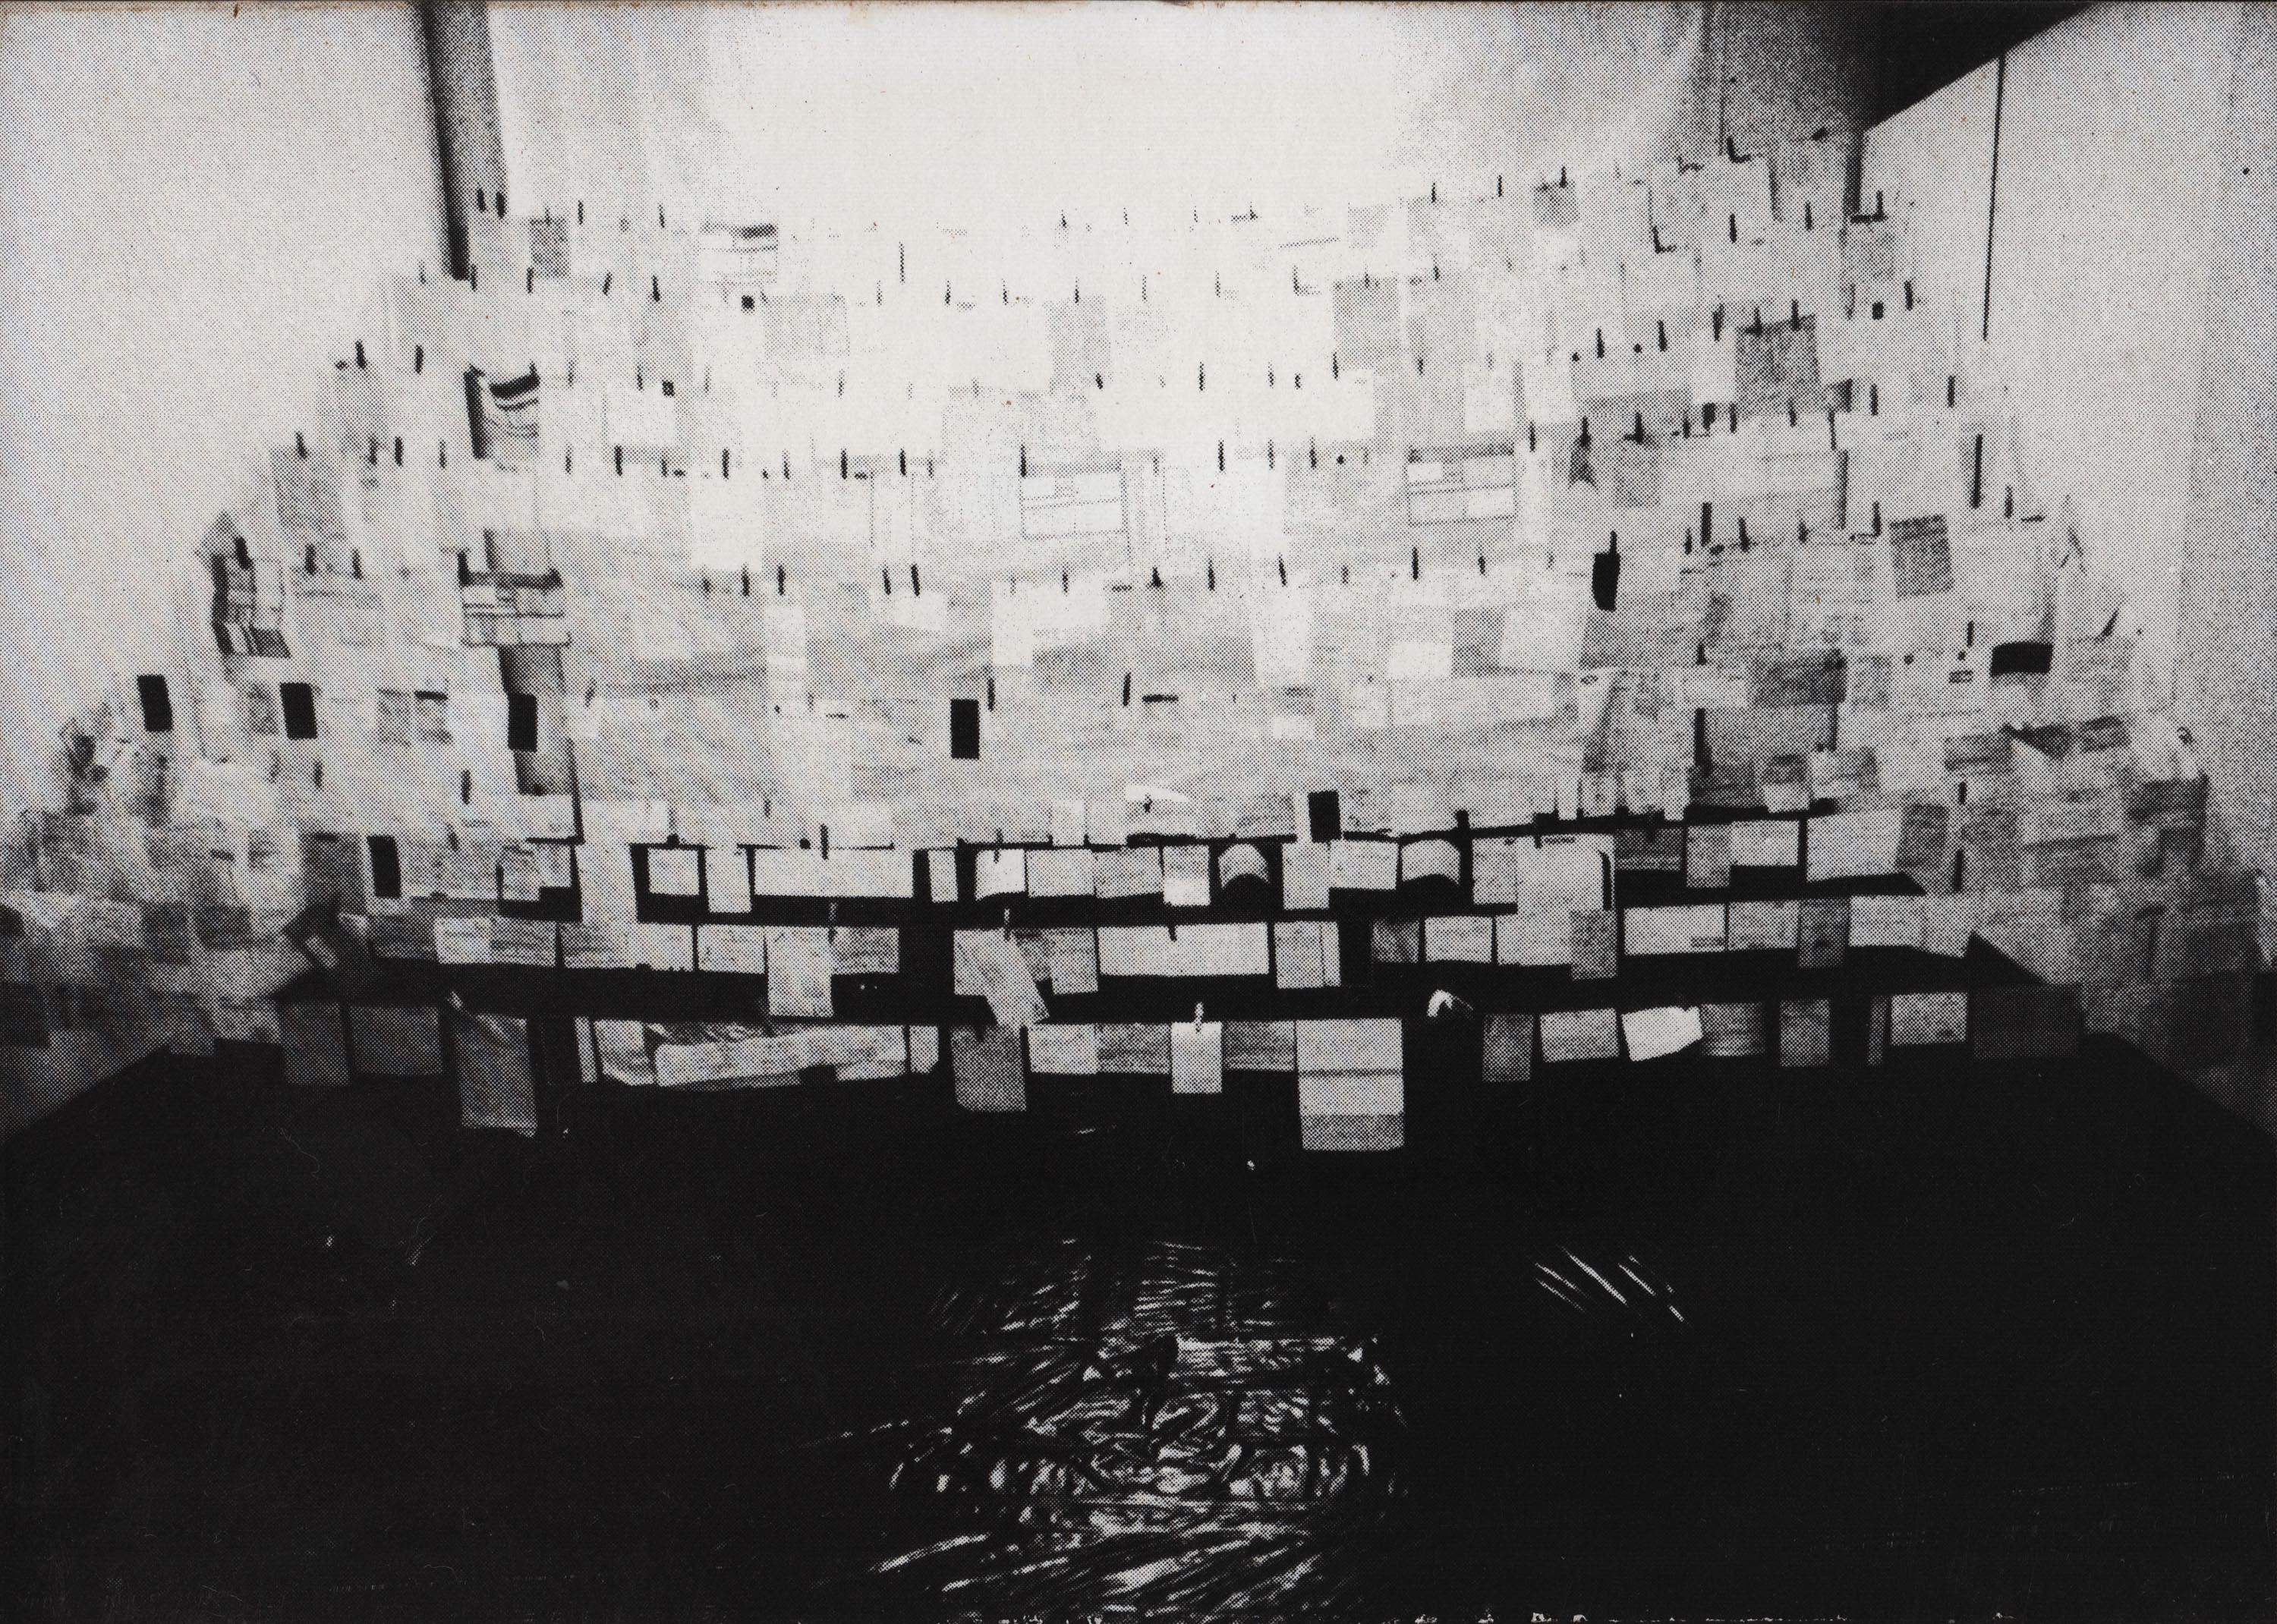 The floor of a room is covered with black plastic bags. Several lines stretch from one side to the other side. Numerous bills hang on the lines.